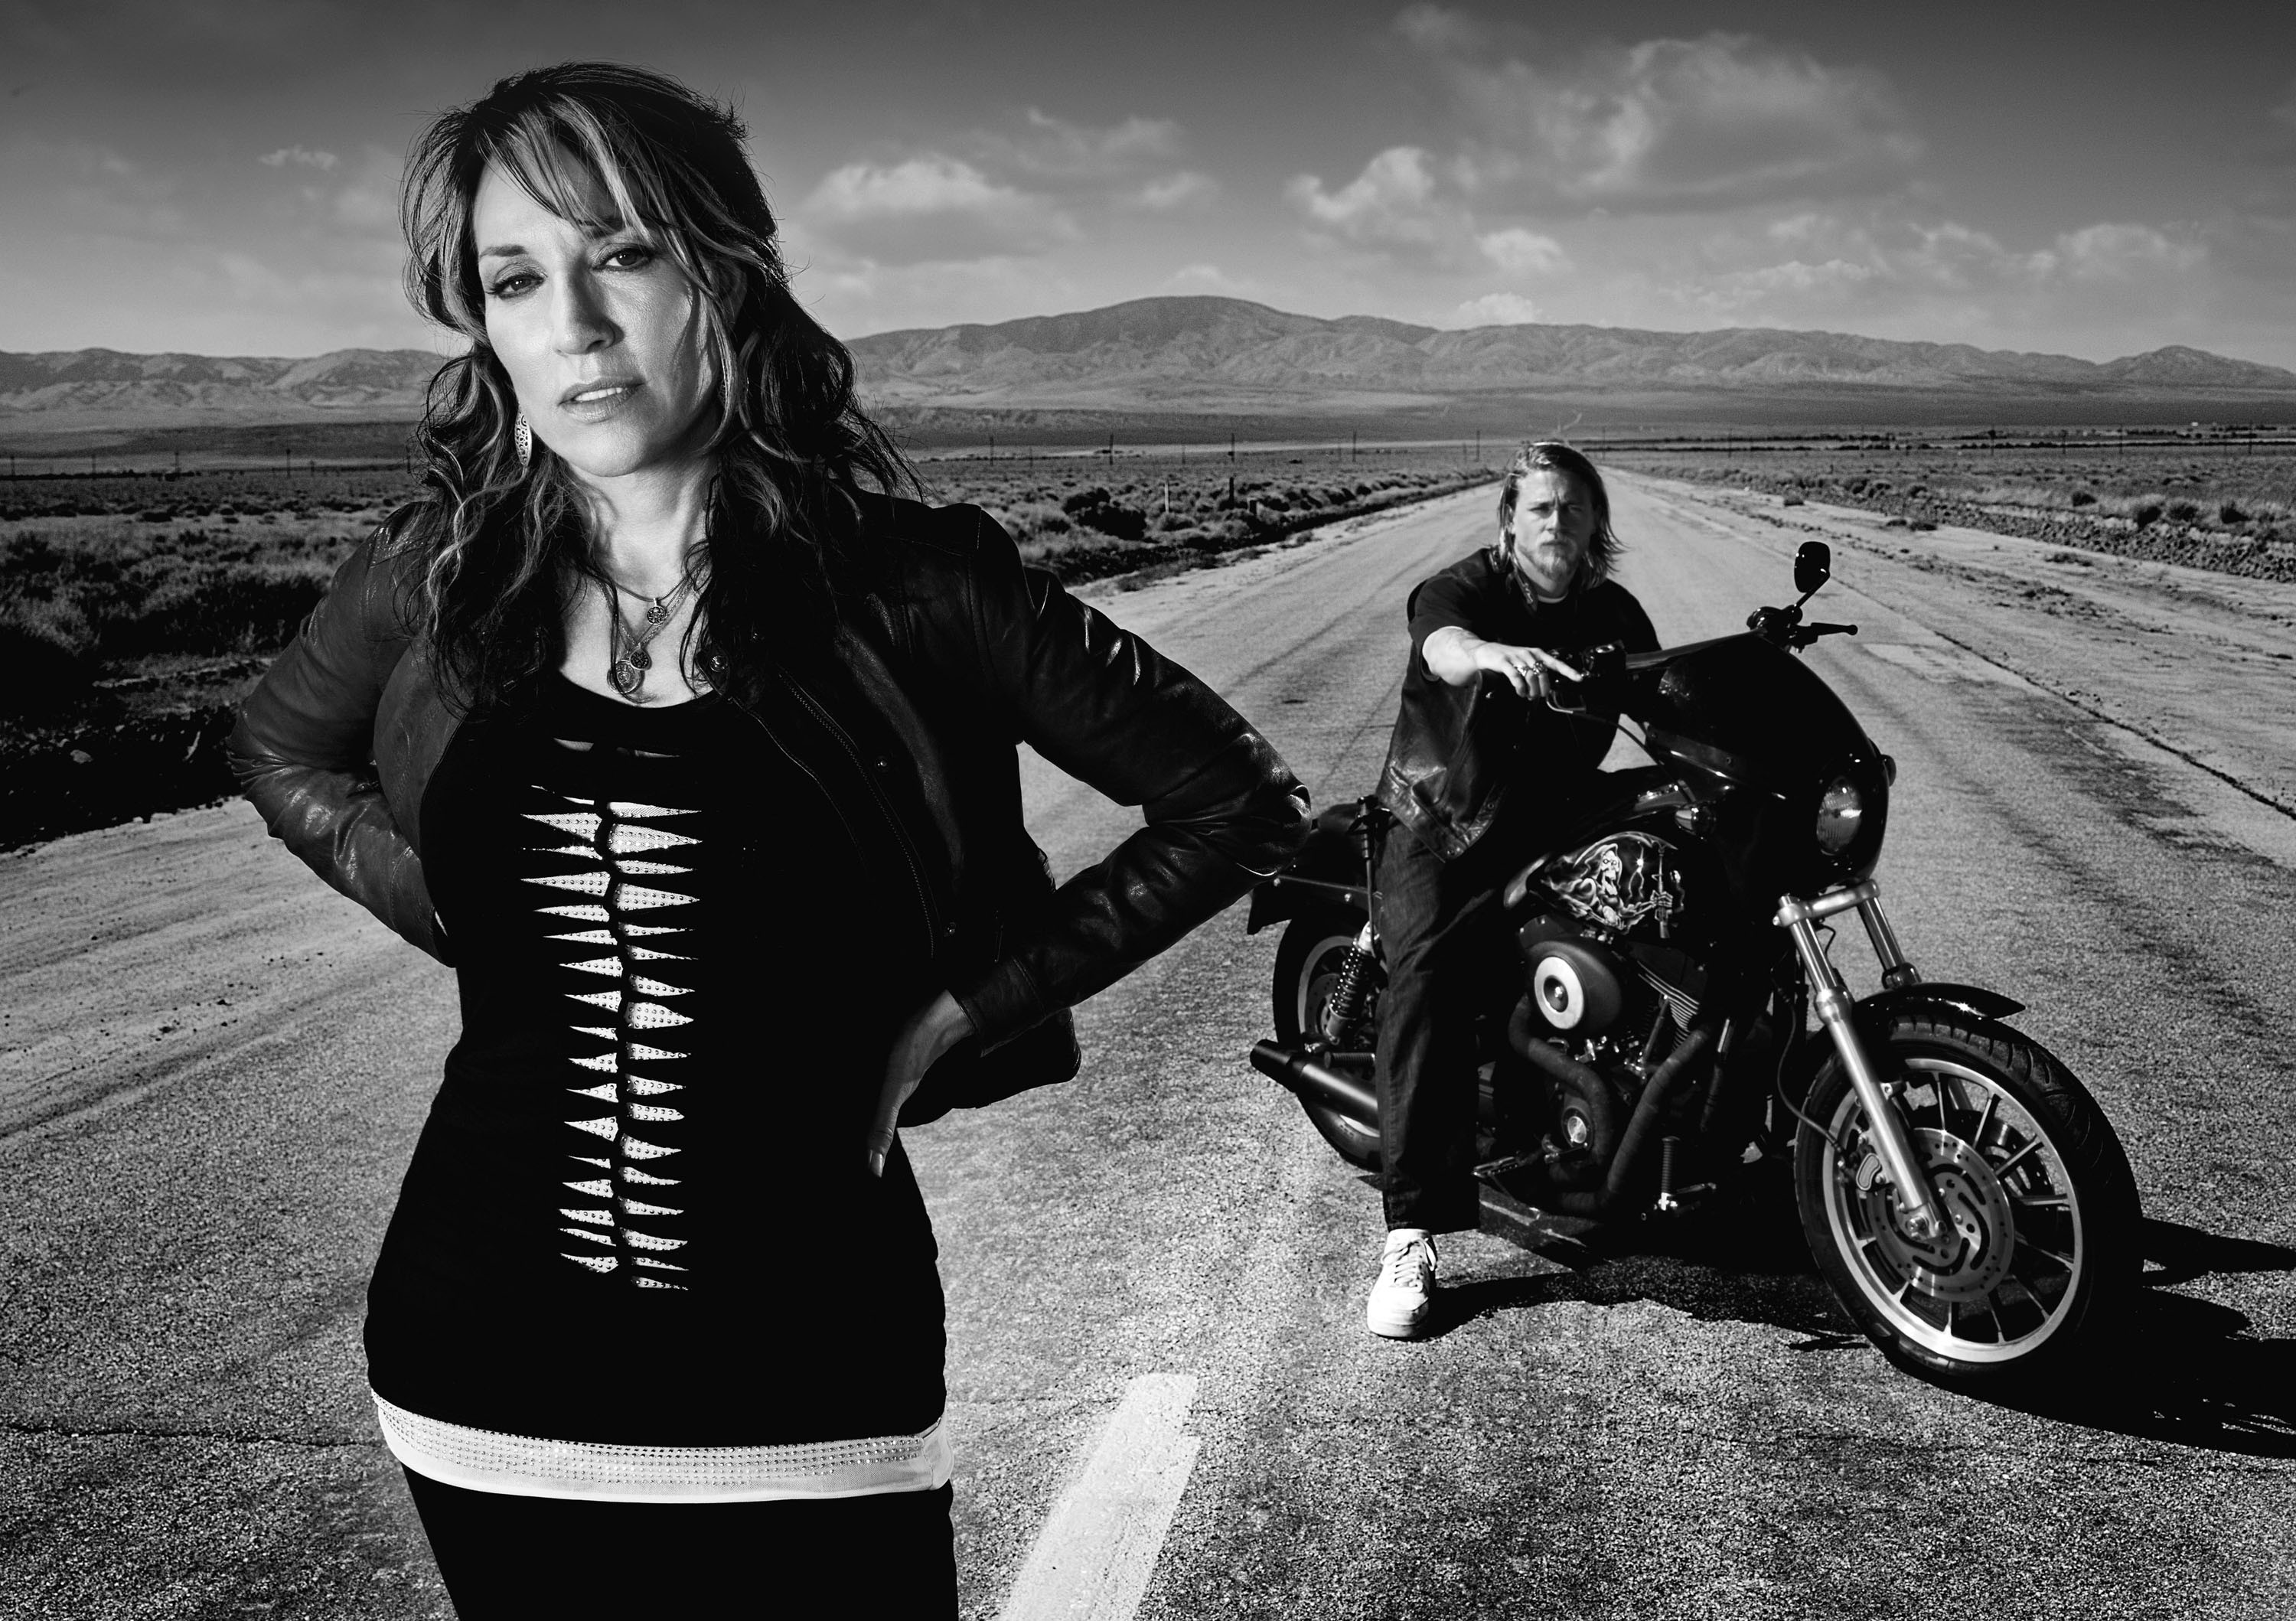 Sons of Anarchy depicts a Californian outlaw biker gang and features  Charlie Hunnam, Katey Sagal